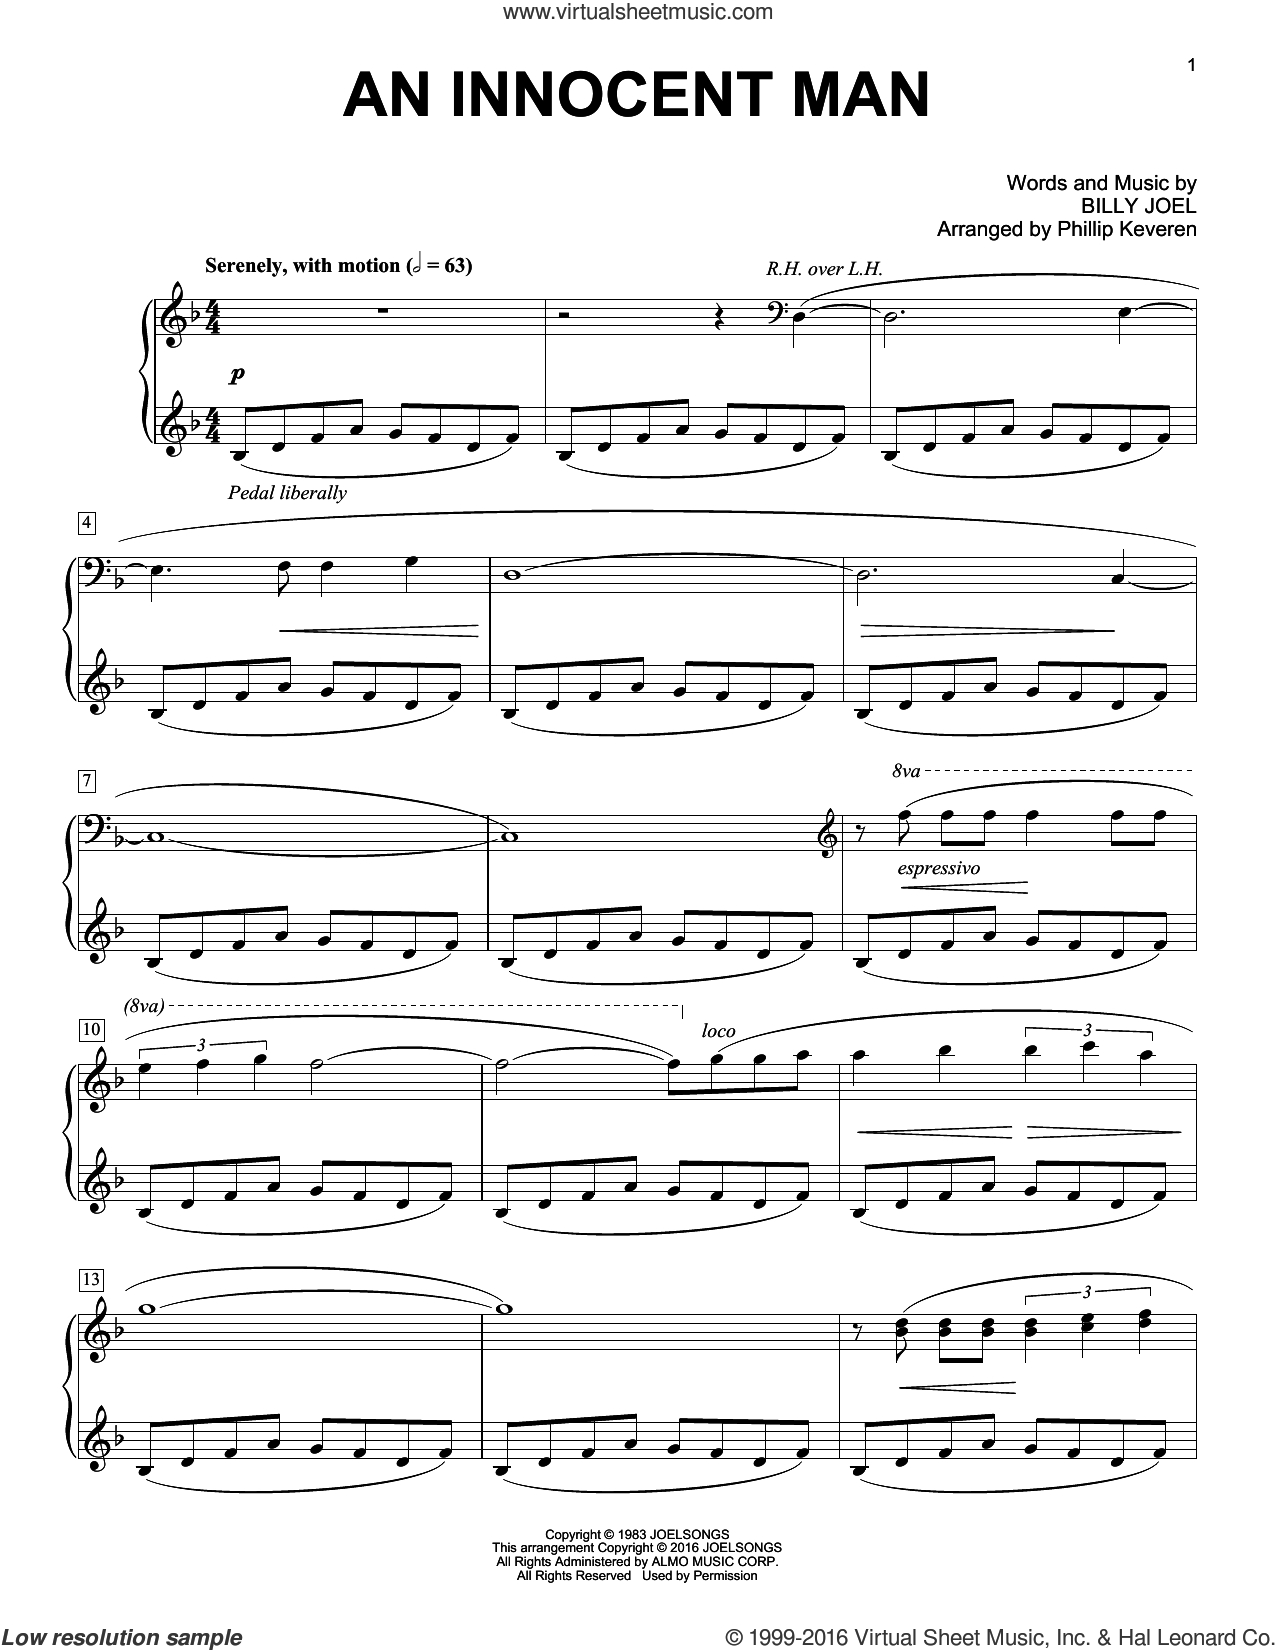 An Innocent Man [Classical version] (arr. Phillip Keveren) sheet music for piano solo by Phillip Keveren, Billy Joel and Billy Joel (Arr. Phillip Keveren), intermediate skill level